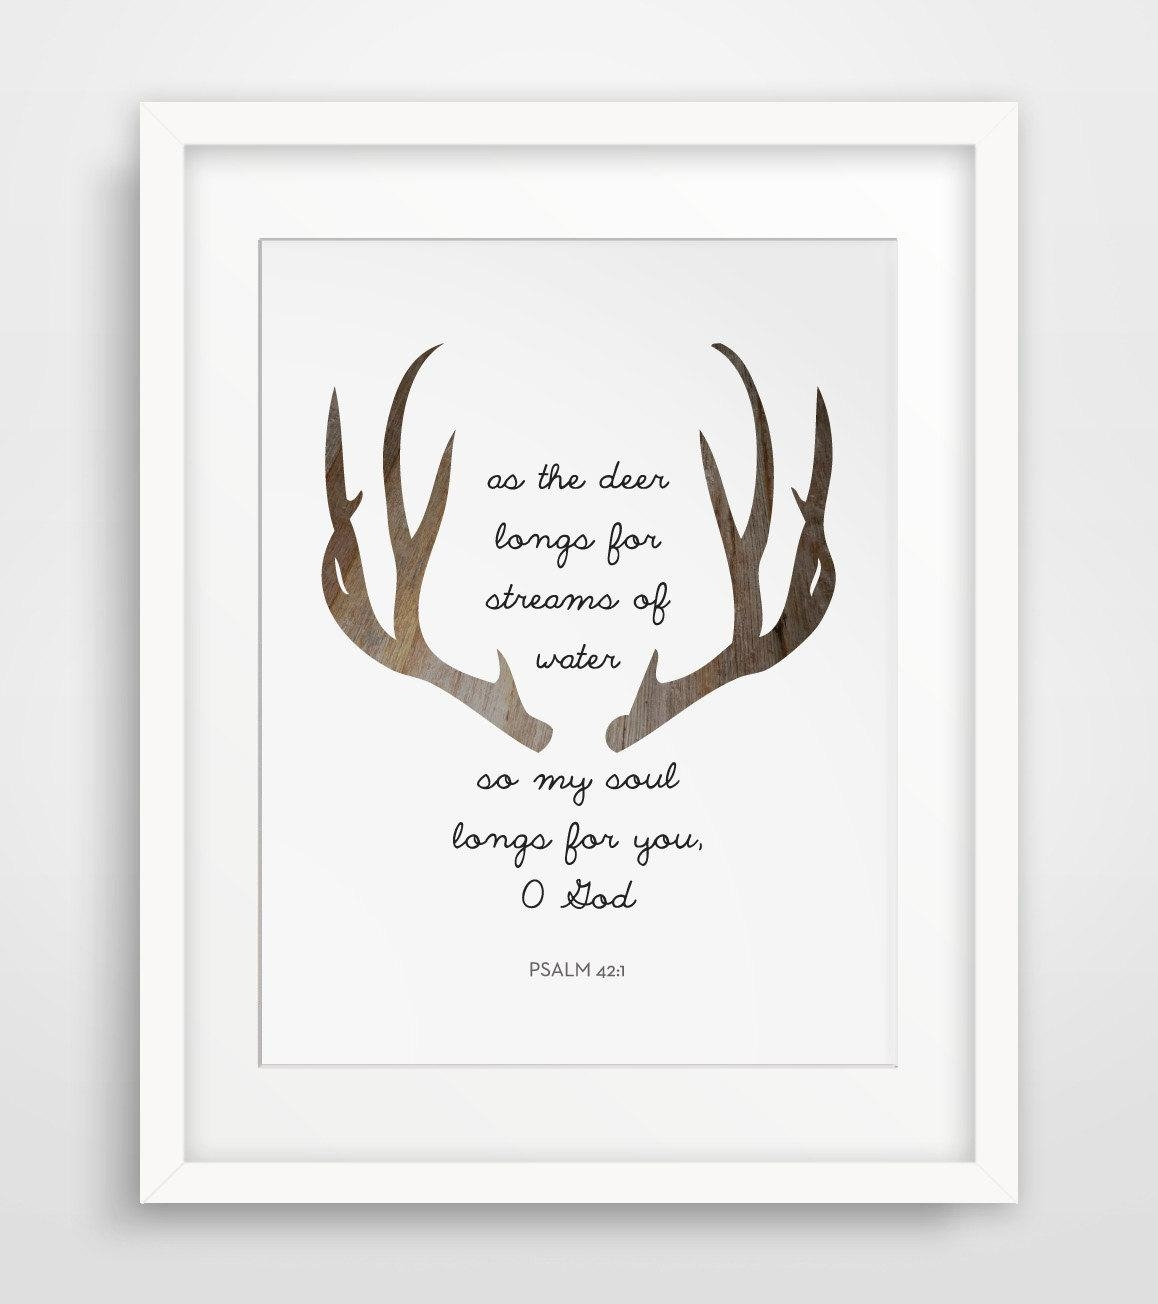 Wall Art Design Ideas: Deer Horn Christian Wall Art Canvas In Christian Canvas Wall Art (View 4 of 20)